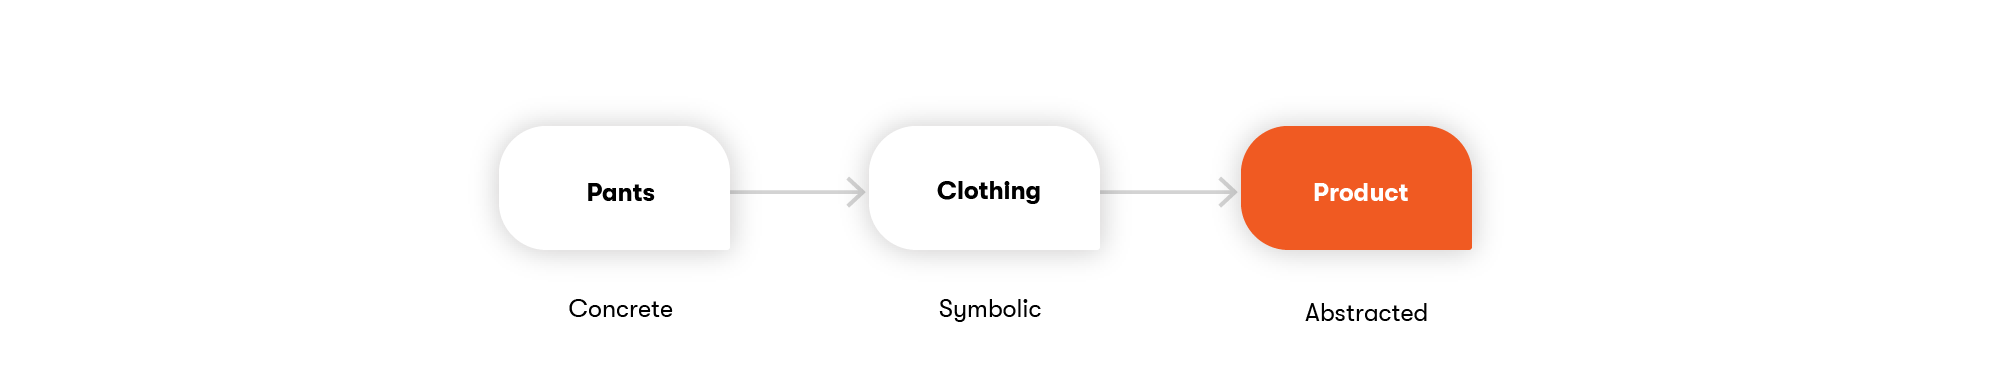 Example 2: E-commerce clothing store